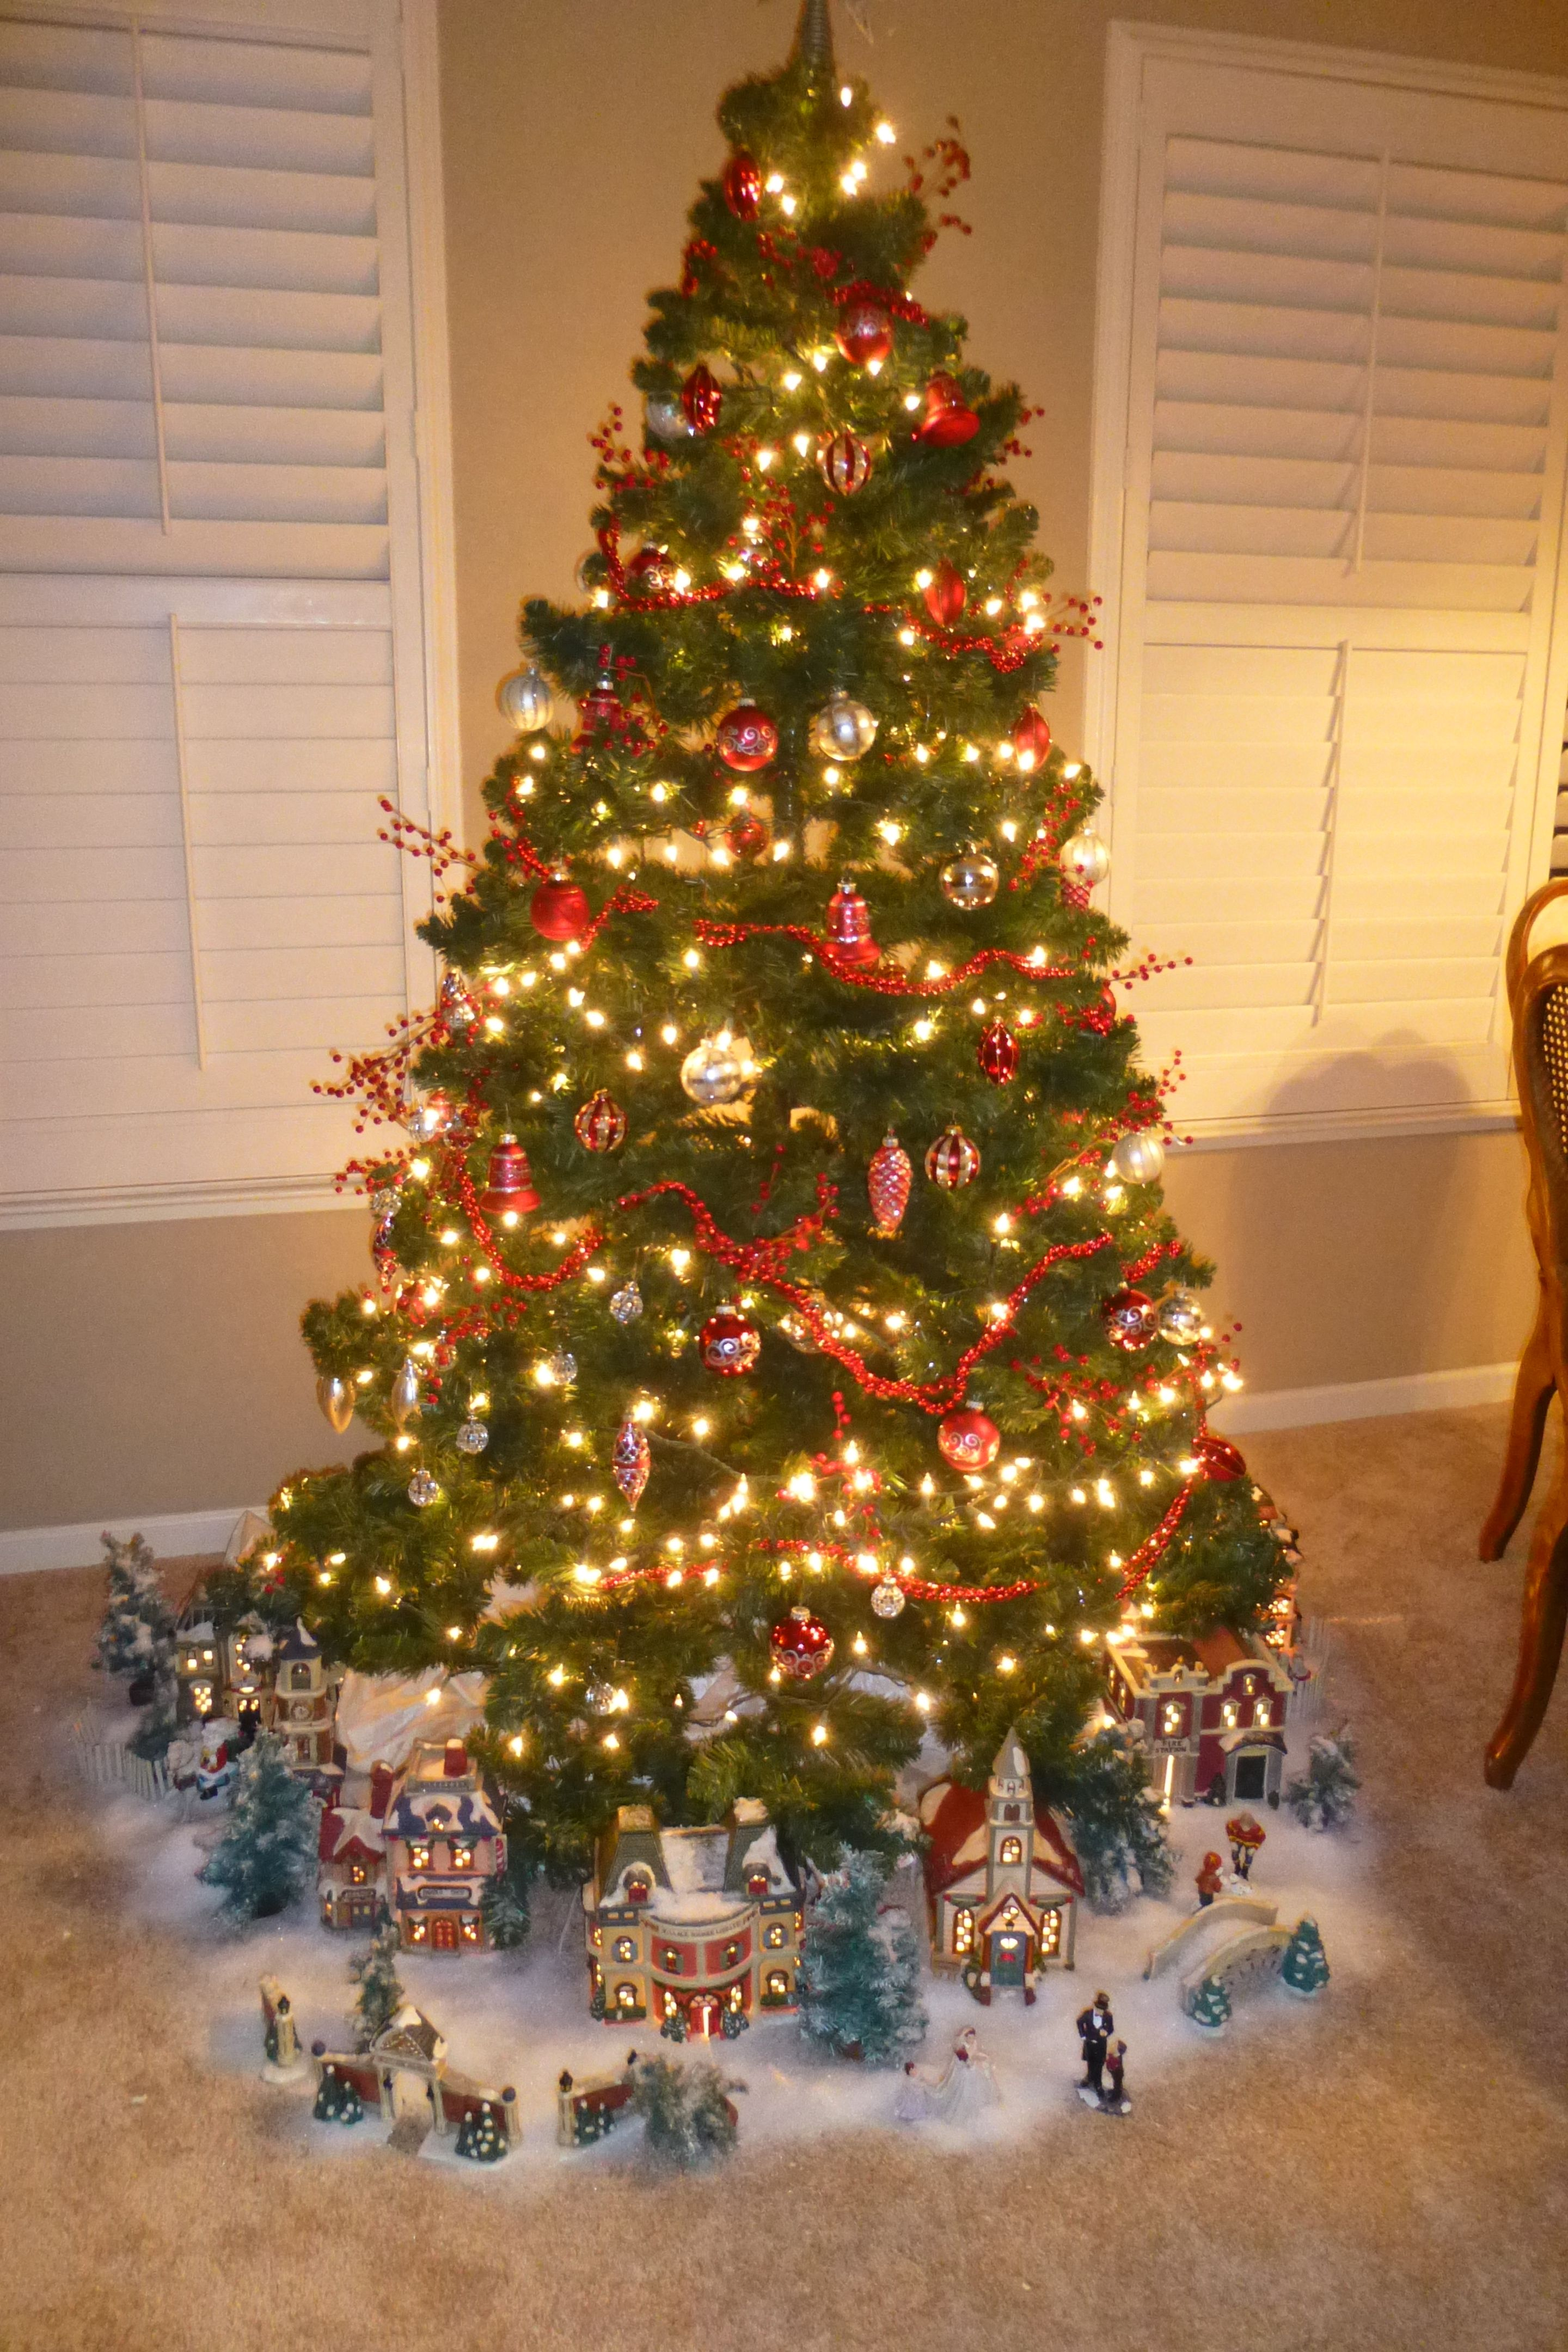 Display Your Christmas Village Under The Tree Because Santa Doesn T Bring Presents Til Christmas Tree Themes Christmas Tree Village Christmas Village Display